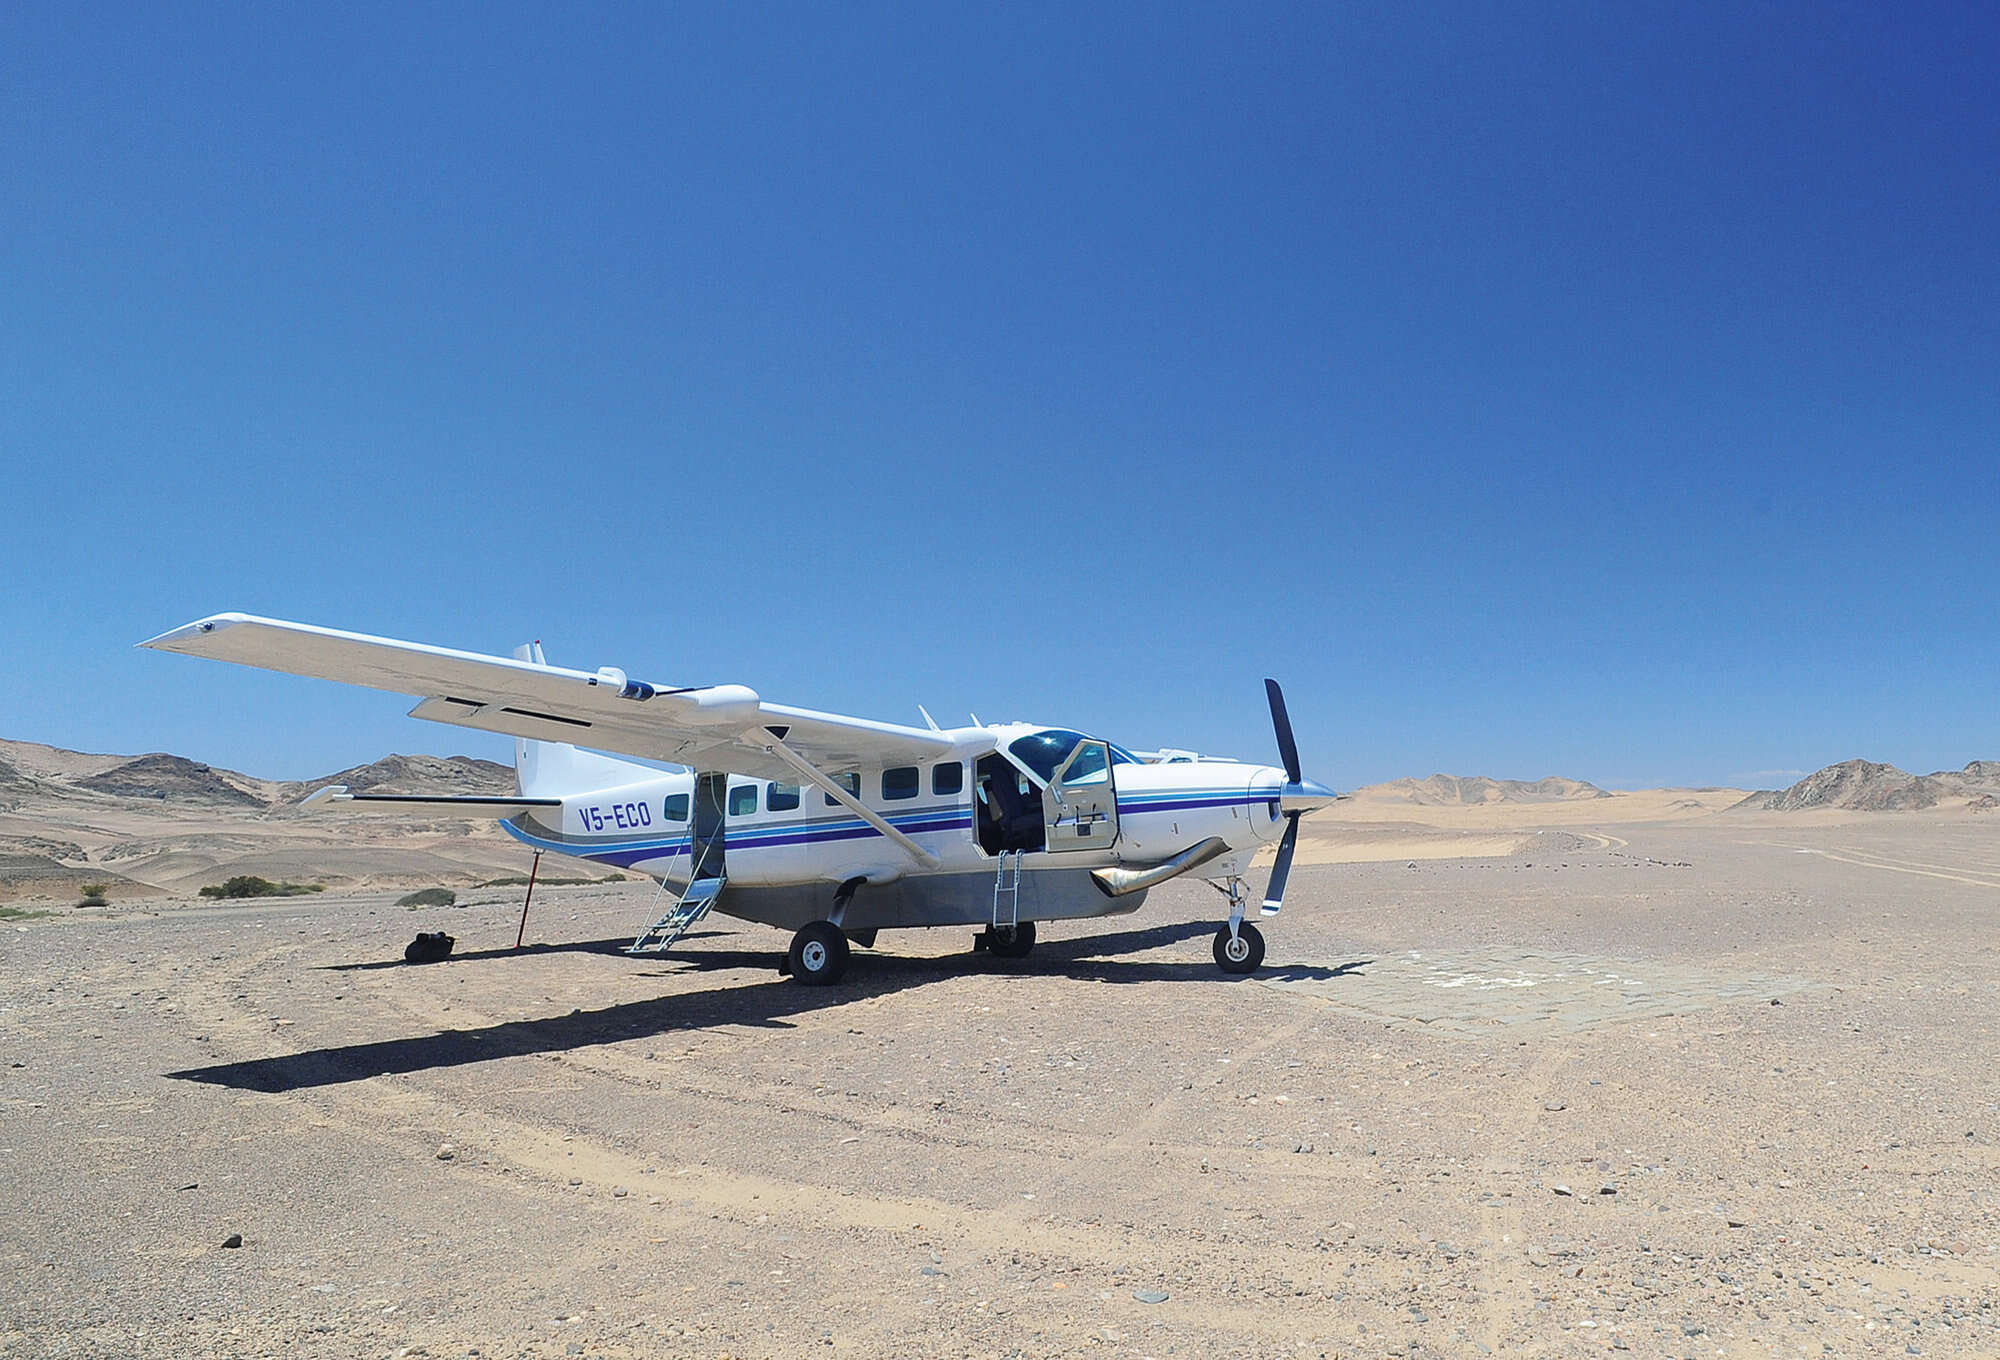 Buzzard fly-in safari to Namibia including northern Damaraland, Etosha National Park and the AfriCat Foundation at Okonjima.